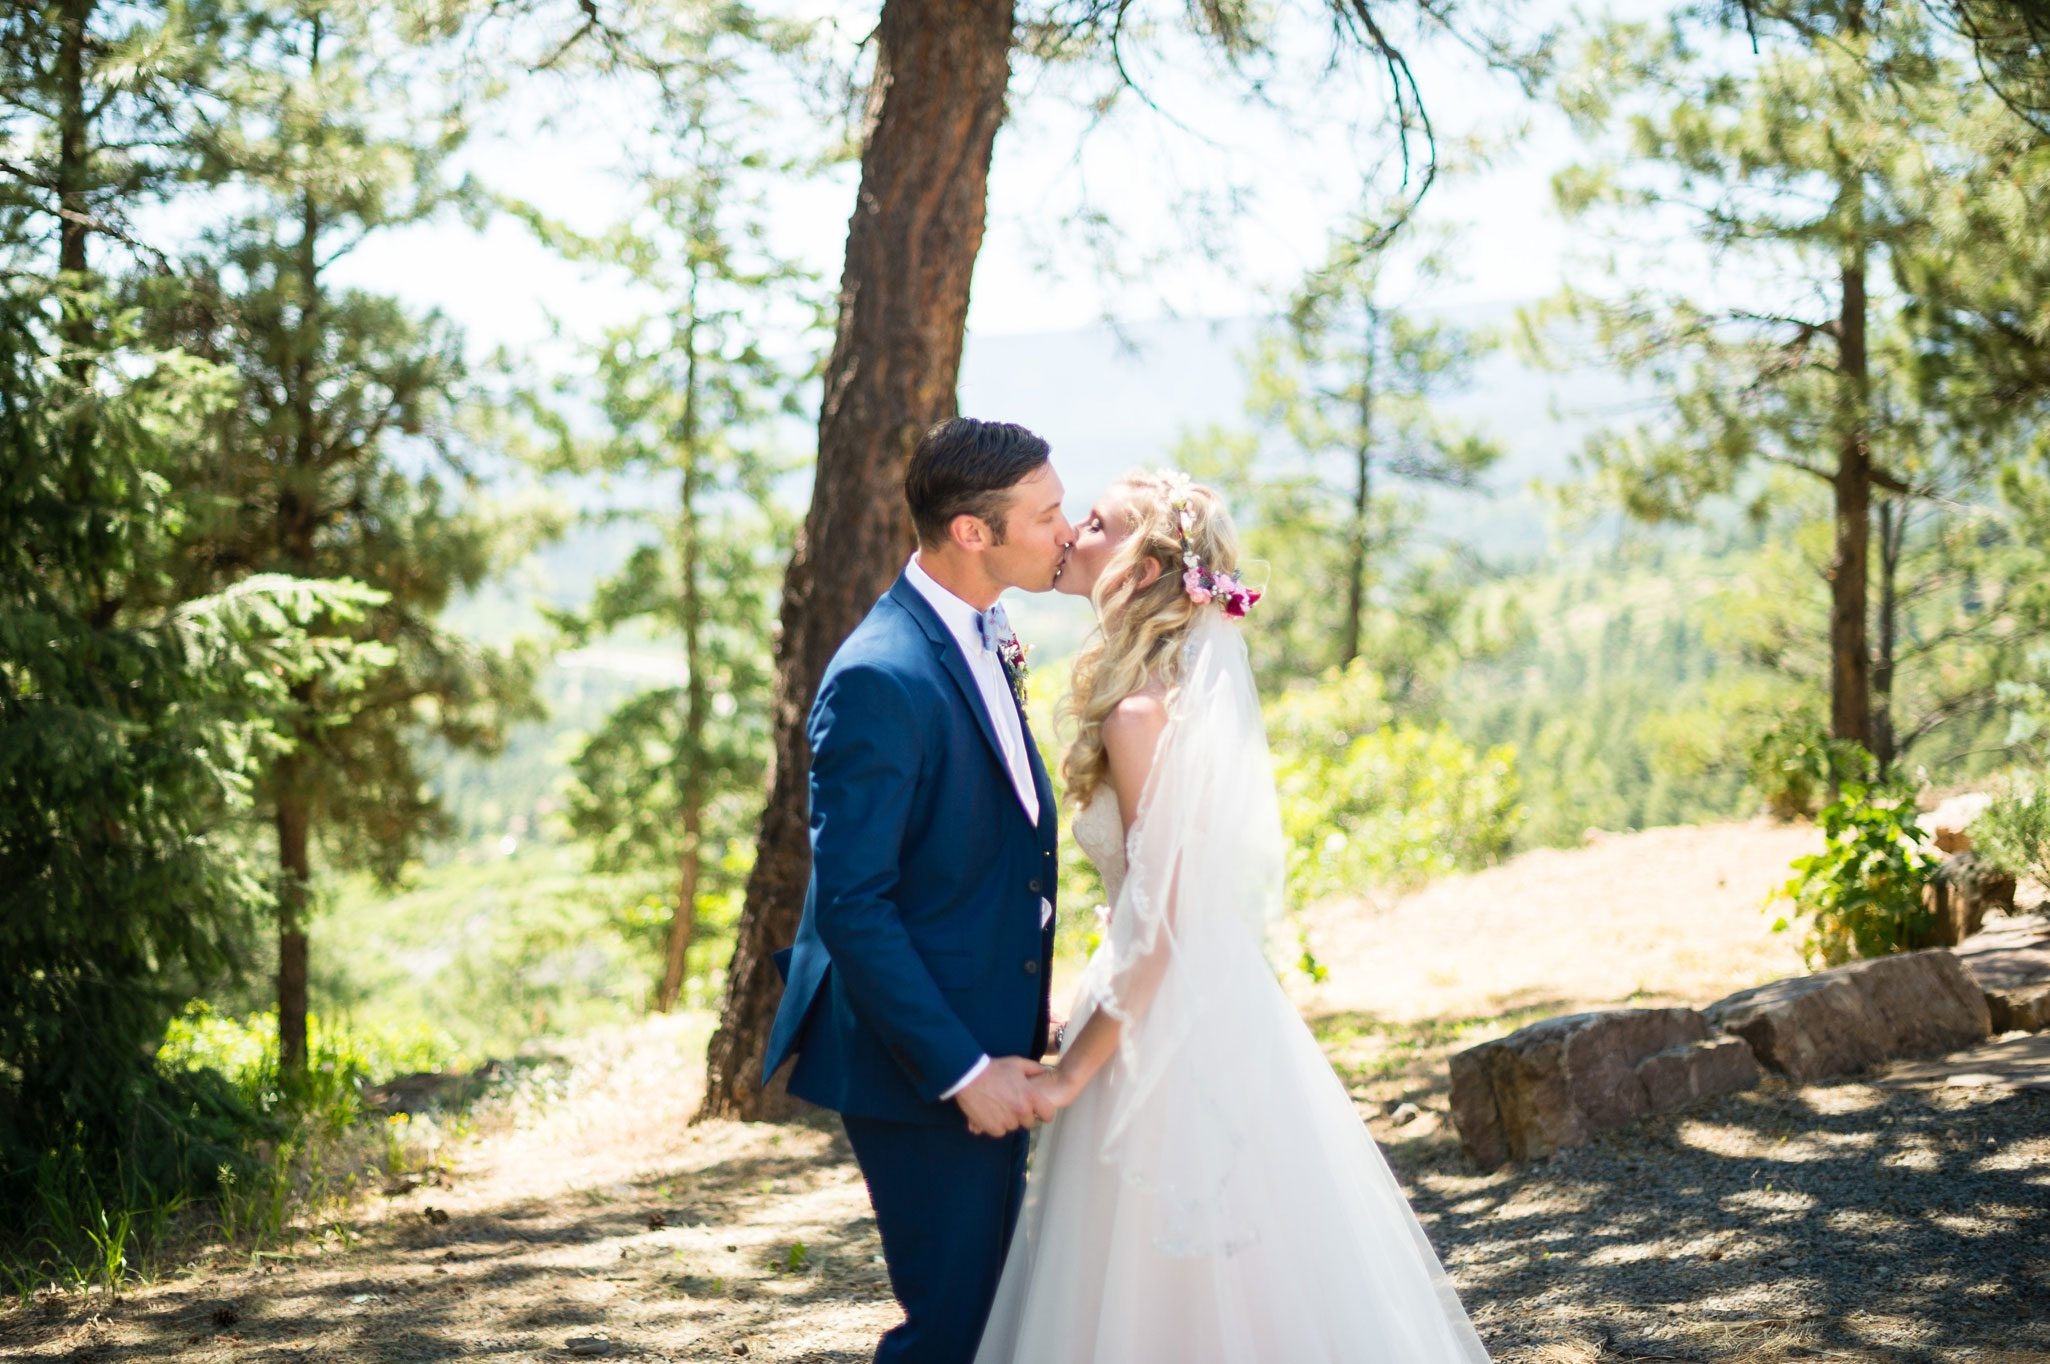 Destination wedding with a vintage bike theme in the mountains of Pagosa Spring, Colorado